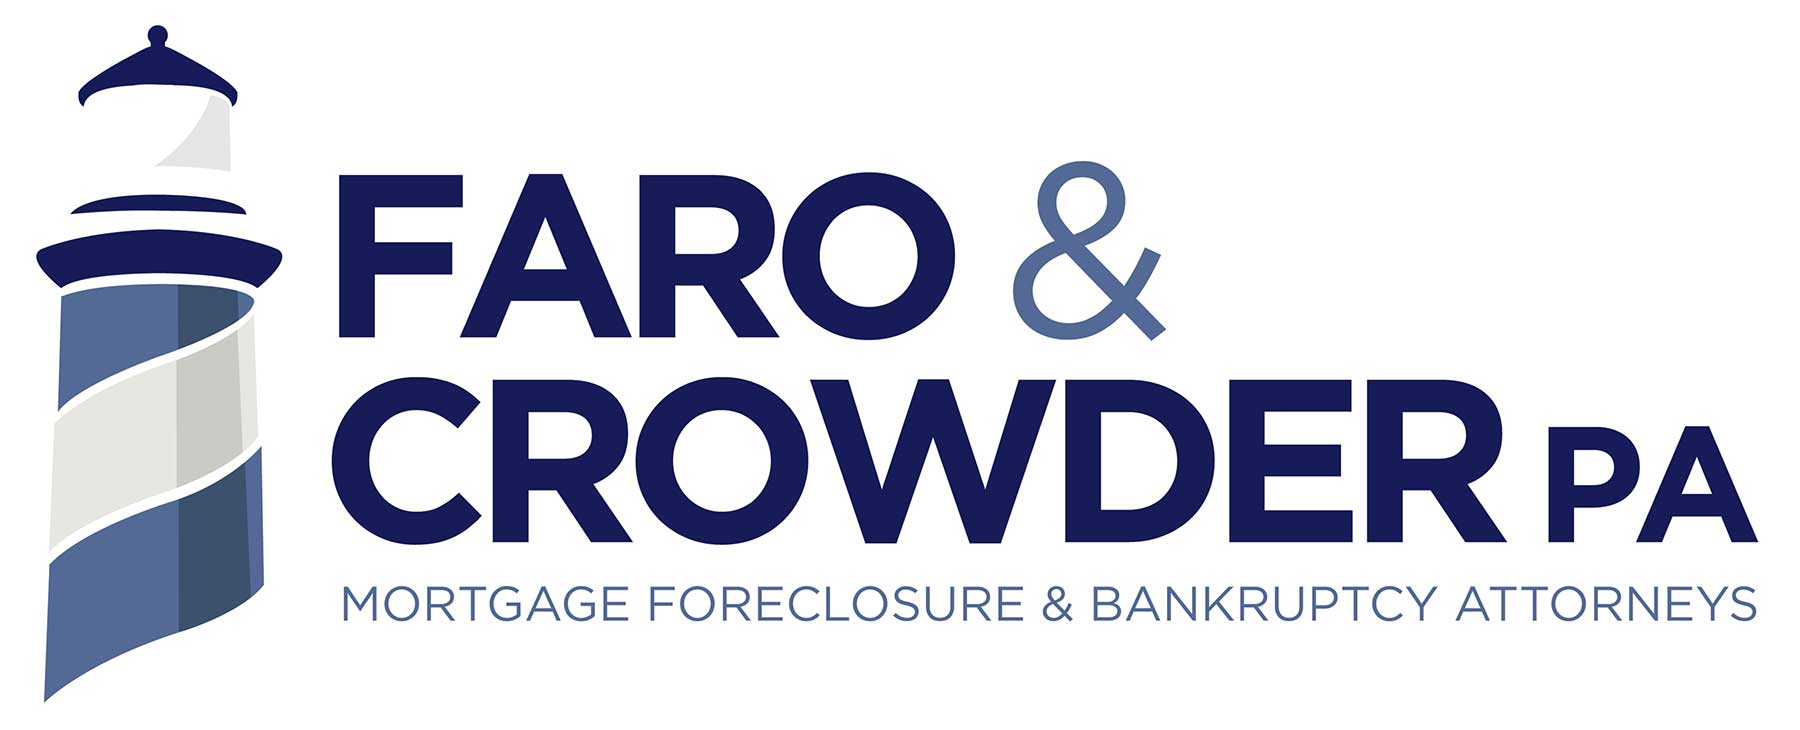 Faro & Crowder, PA - Mortgage Foreclosure & Bankruptcy Attorneys